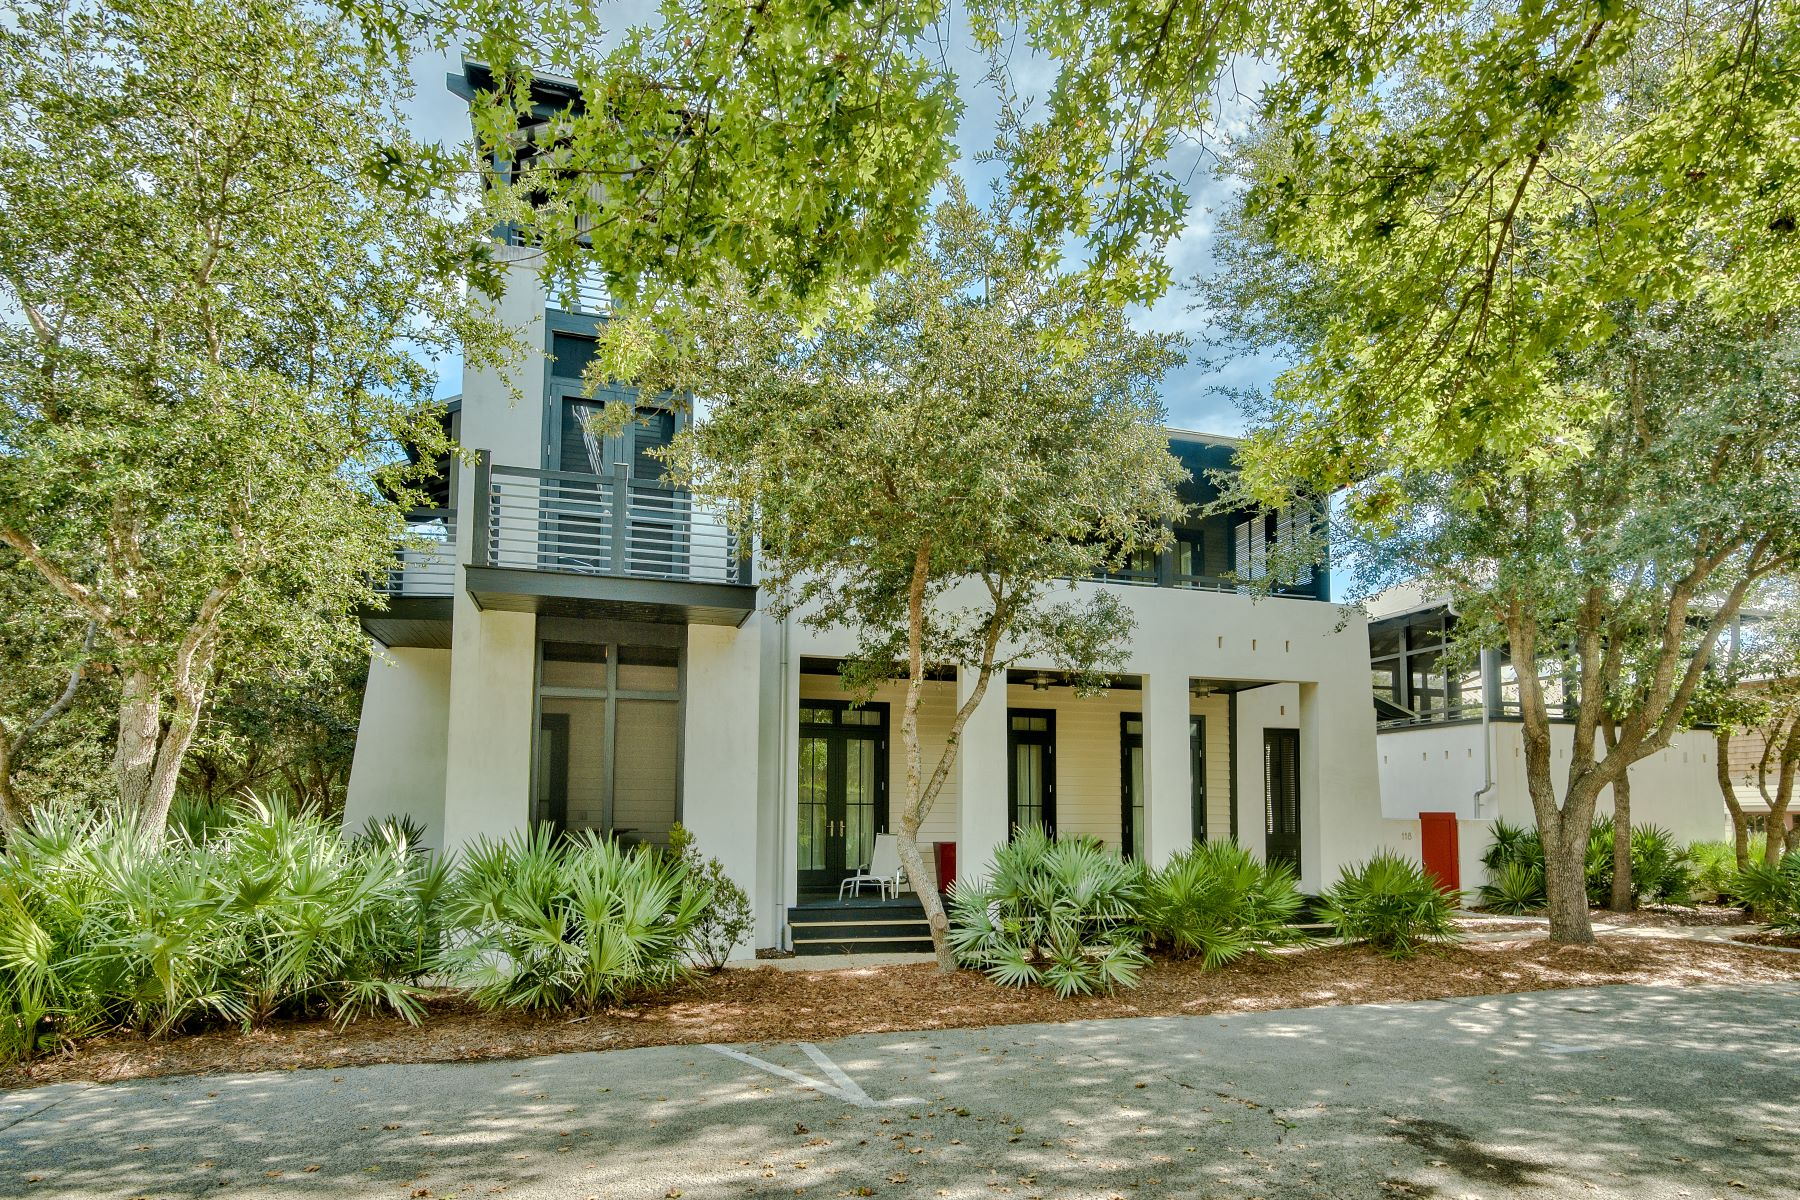 Single Family Homes for Sale at Custom Designed House with Four Bedrooms In Rosemary Beach 118 Bridgetown Avenue, Rosemary Beach, Florida 32461 United States